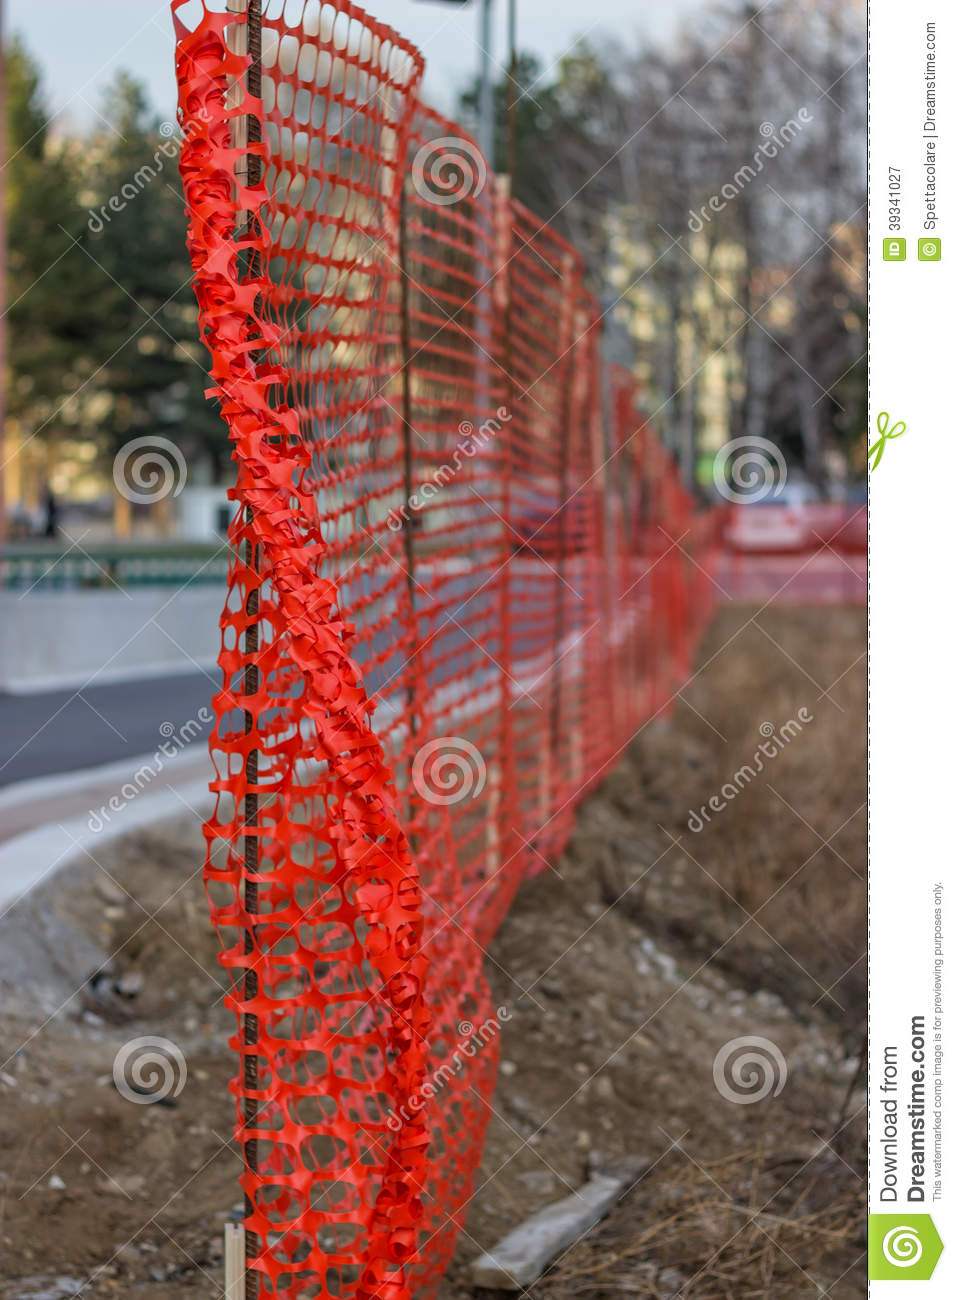 Installing construction mesh safety fence stock photo